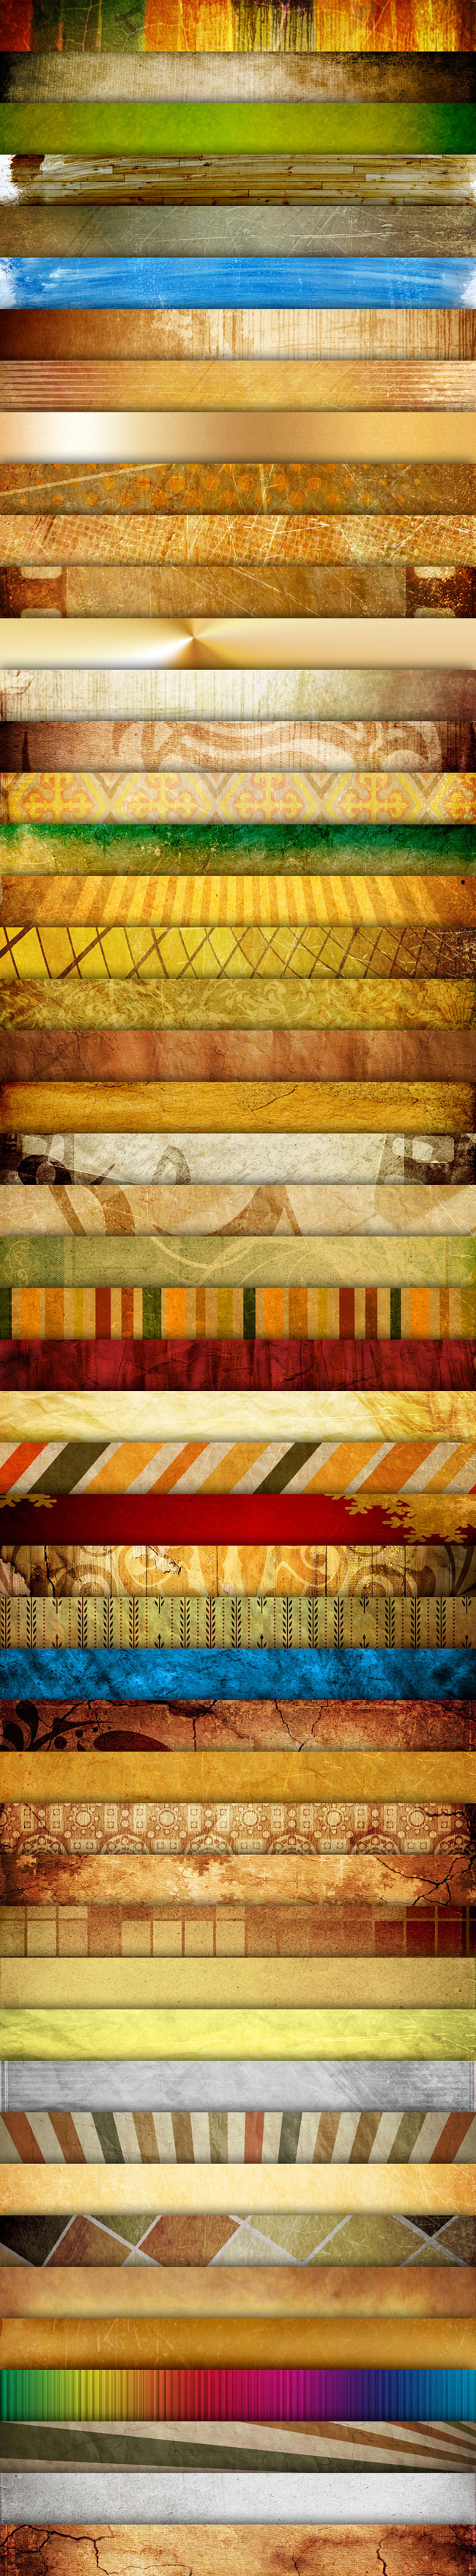 50 High Quality Texture Backgrounds   only 10   MightyDeals 650x3515